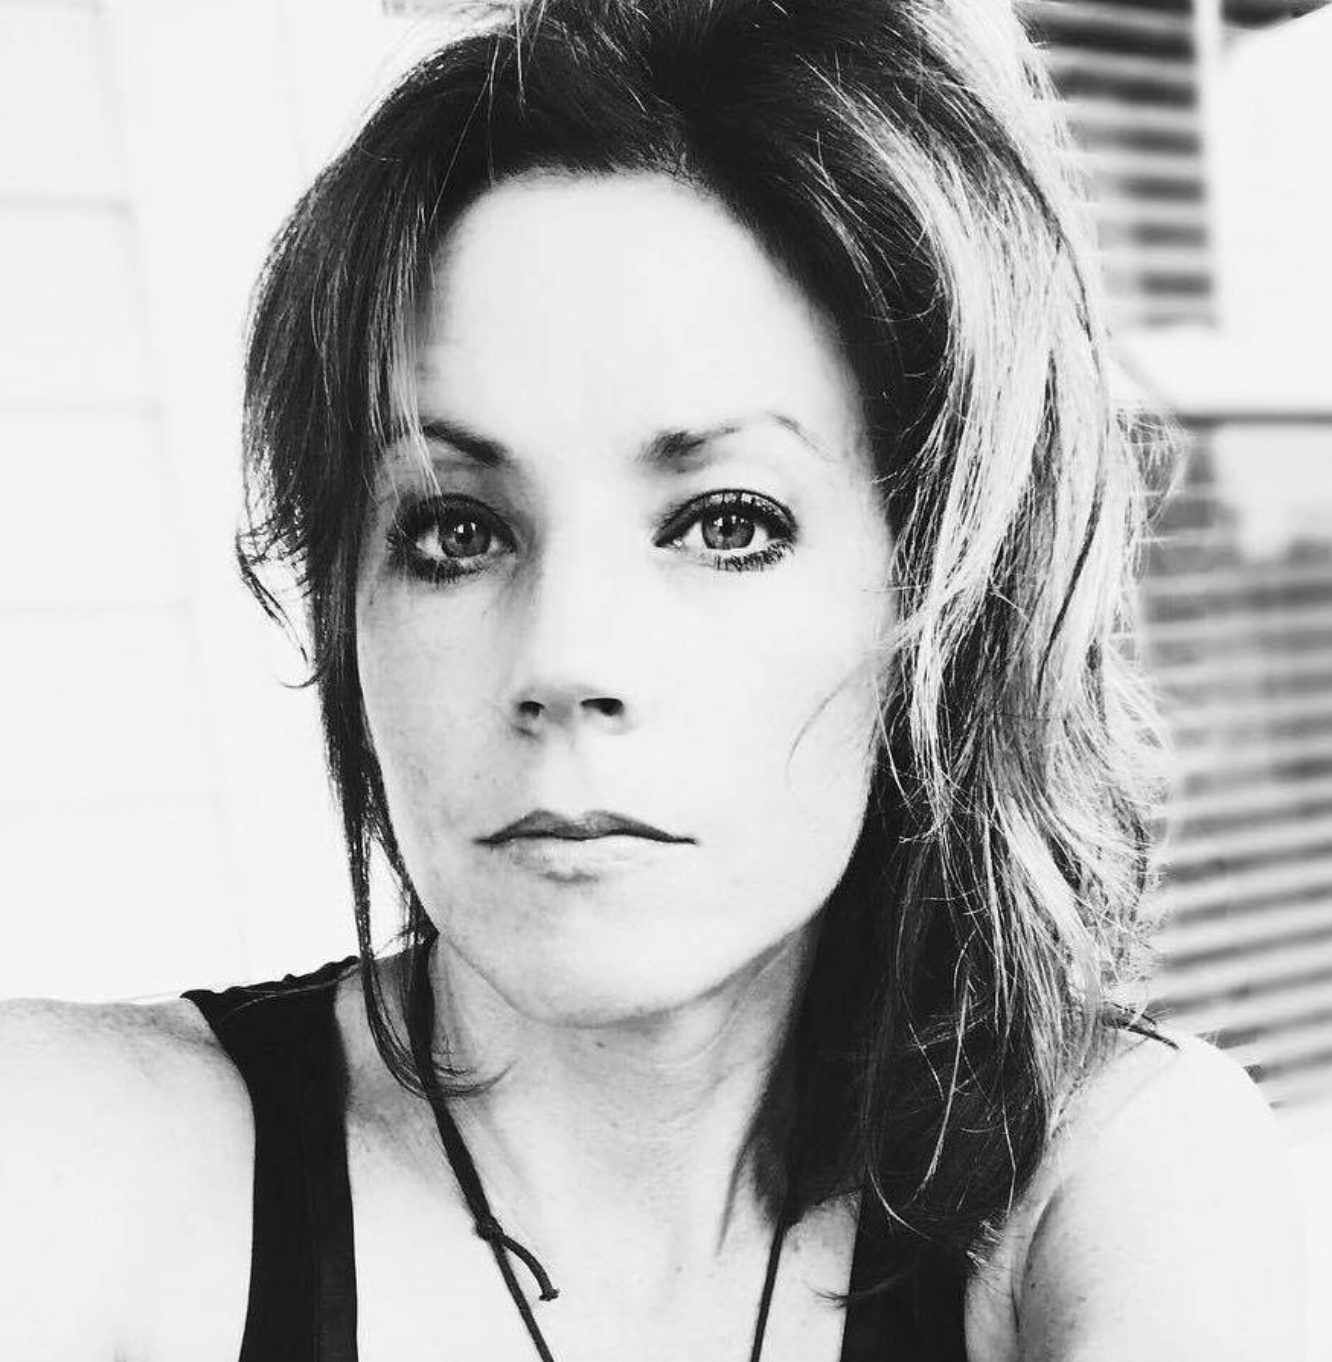 Screen Shot 2019-05-29 at 9.44.18 AM.png